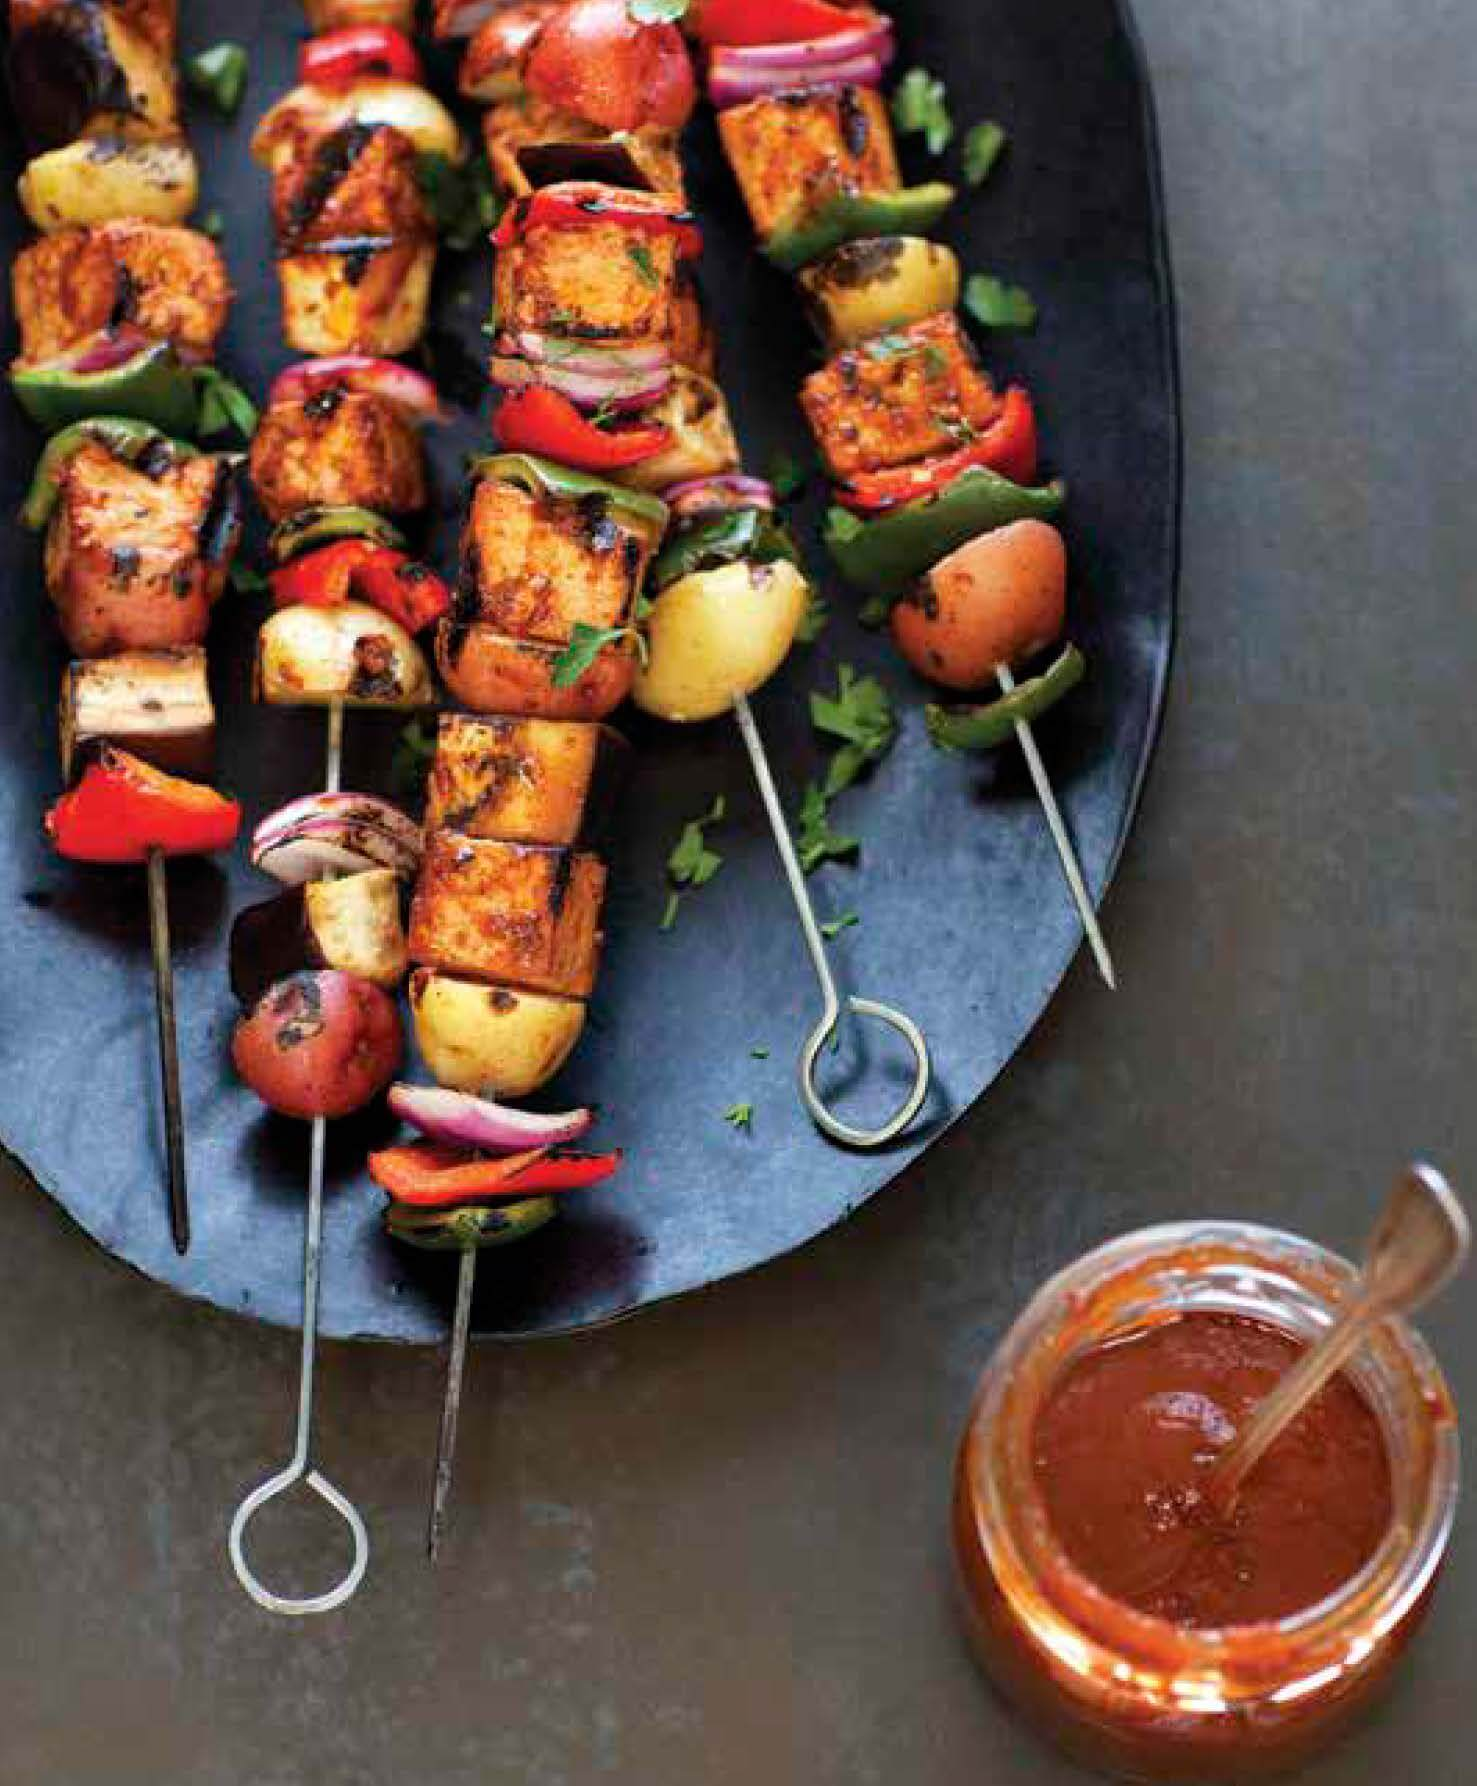 Summer Vegetable and Tofu Kebabs with Pomegranate-Peach Barbecue Sauce